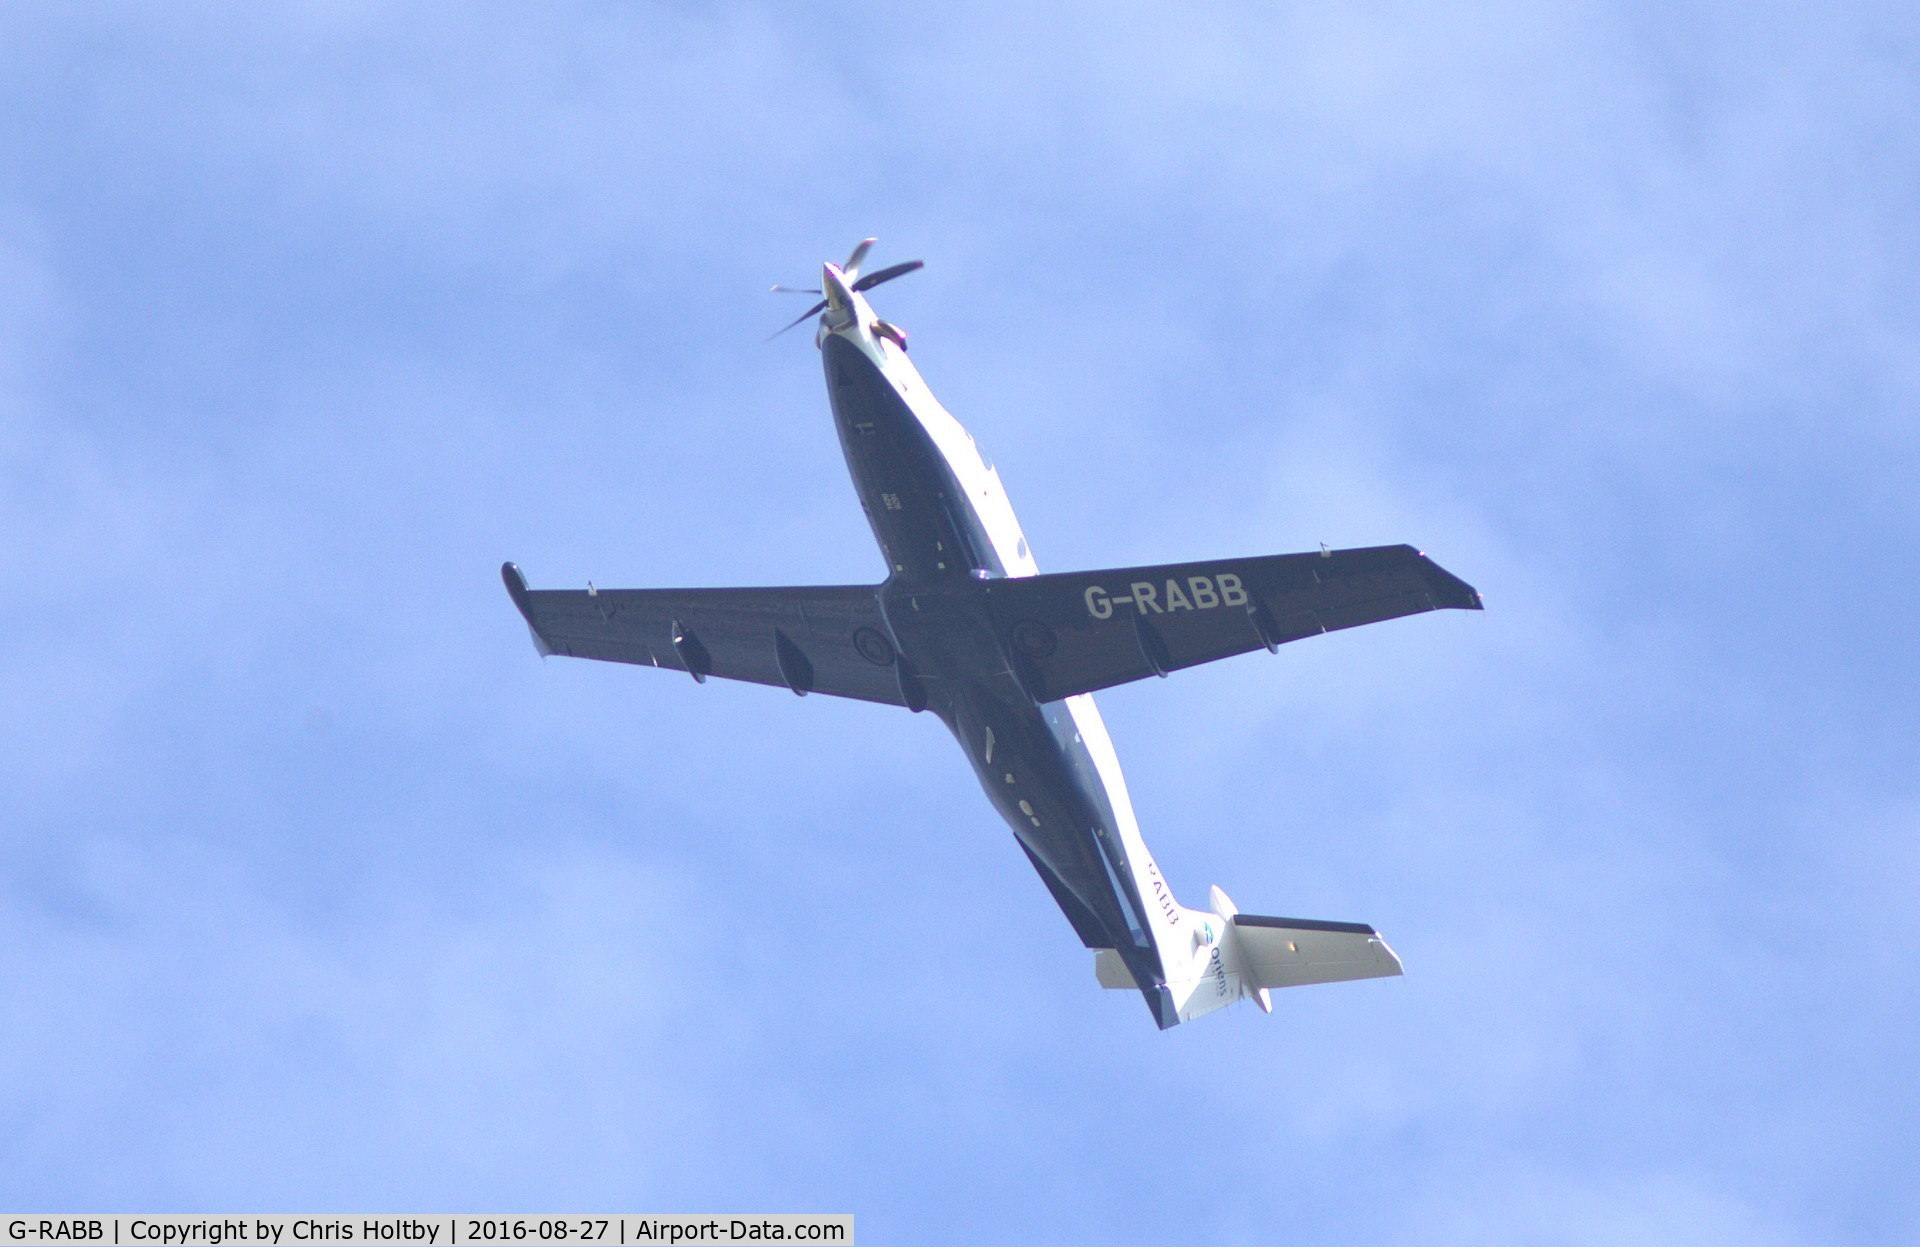 http://www.airport-data.com/images/aircraft/large/001/221/001221676.jpg